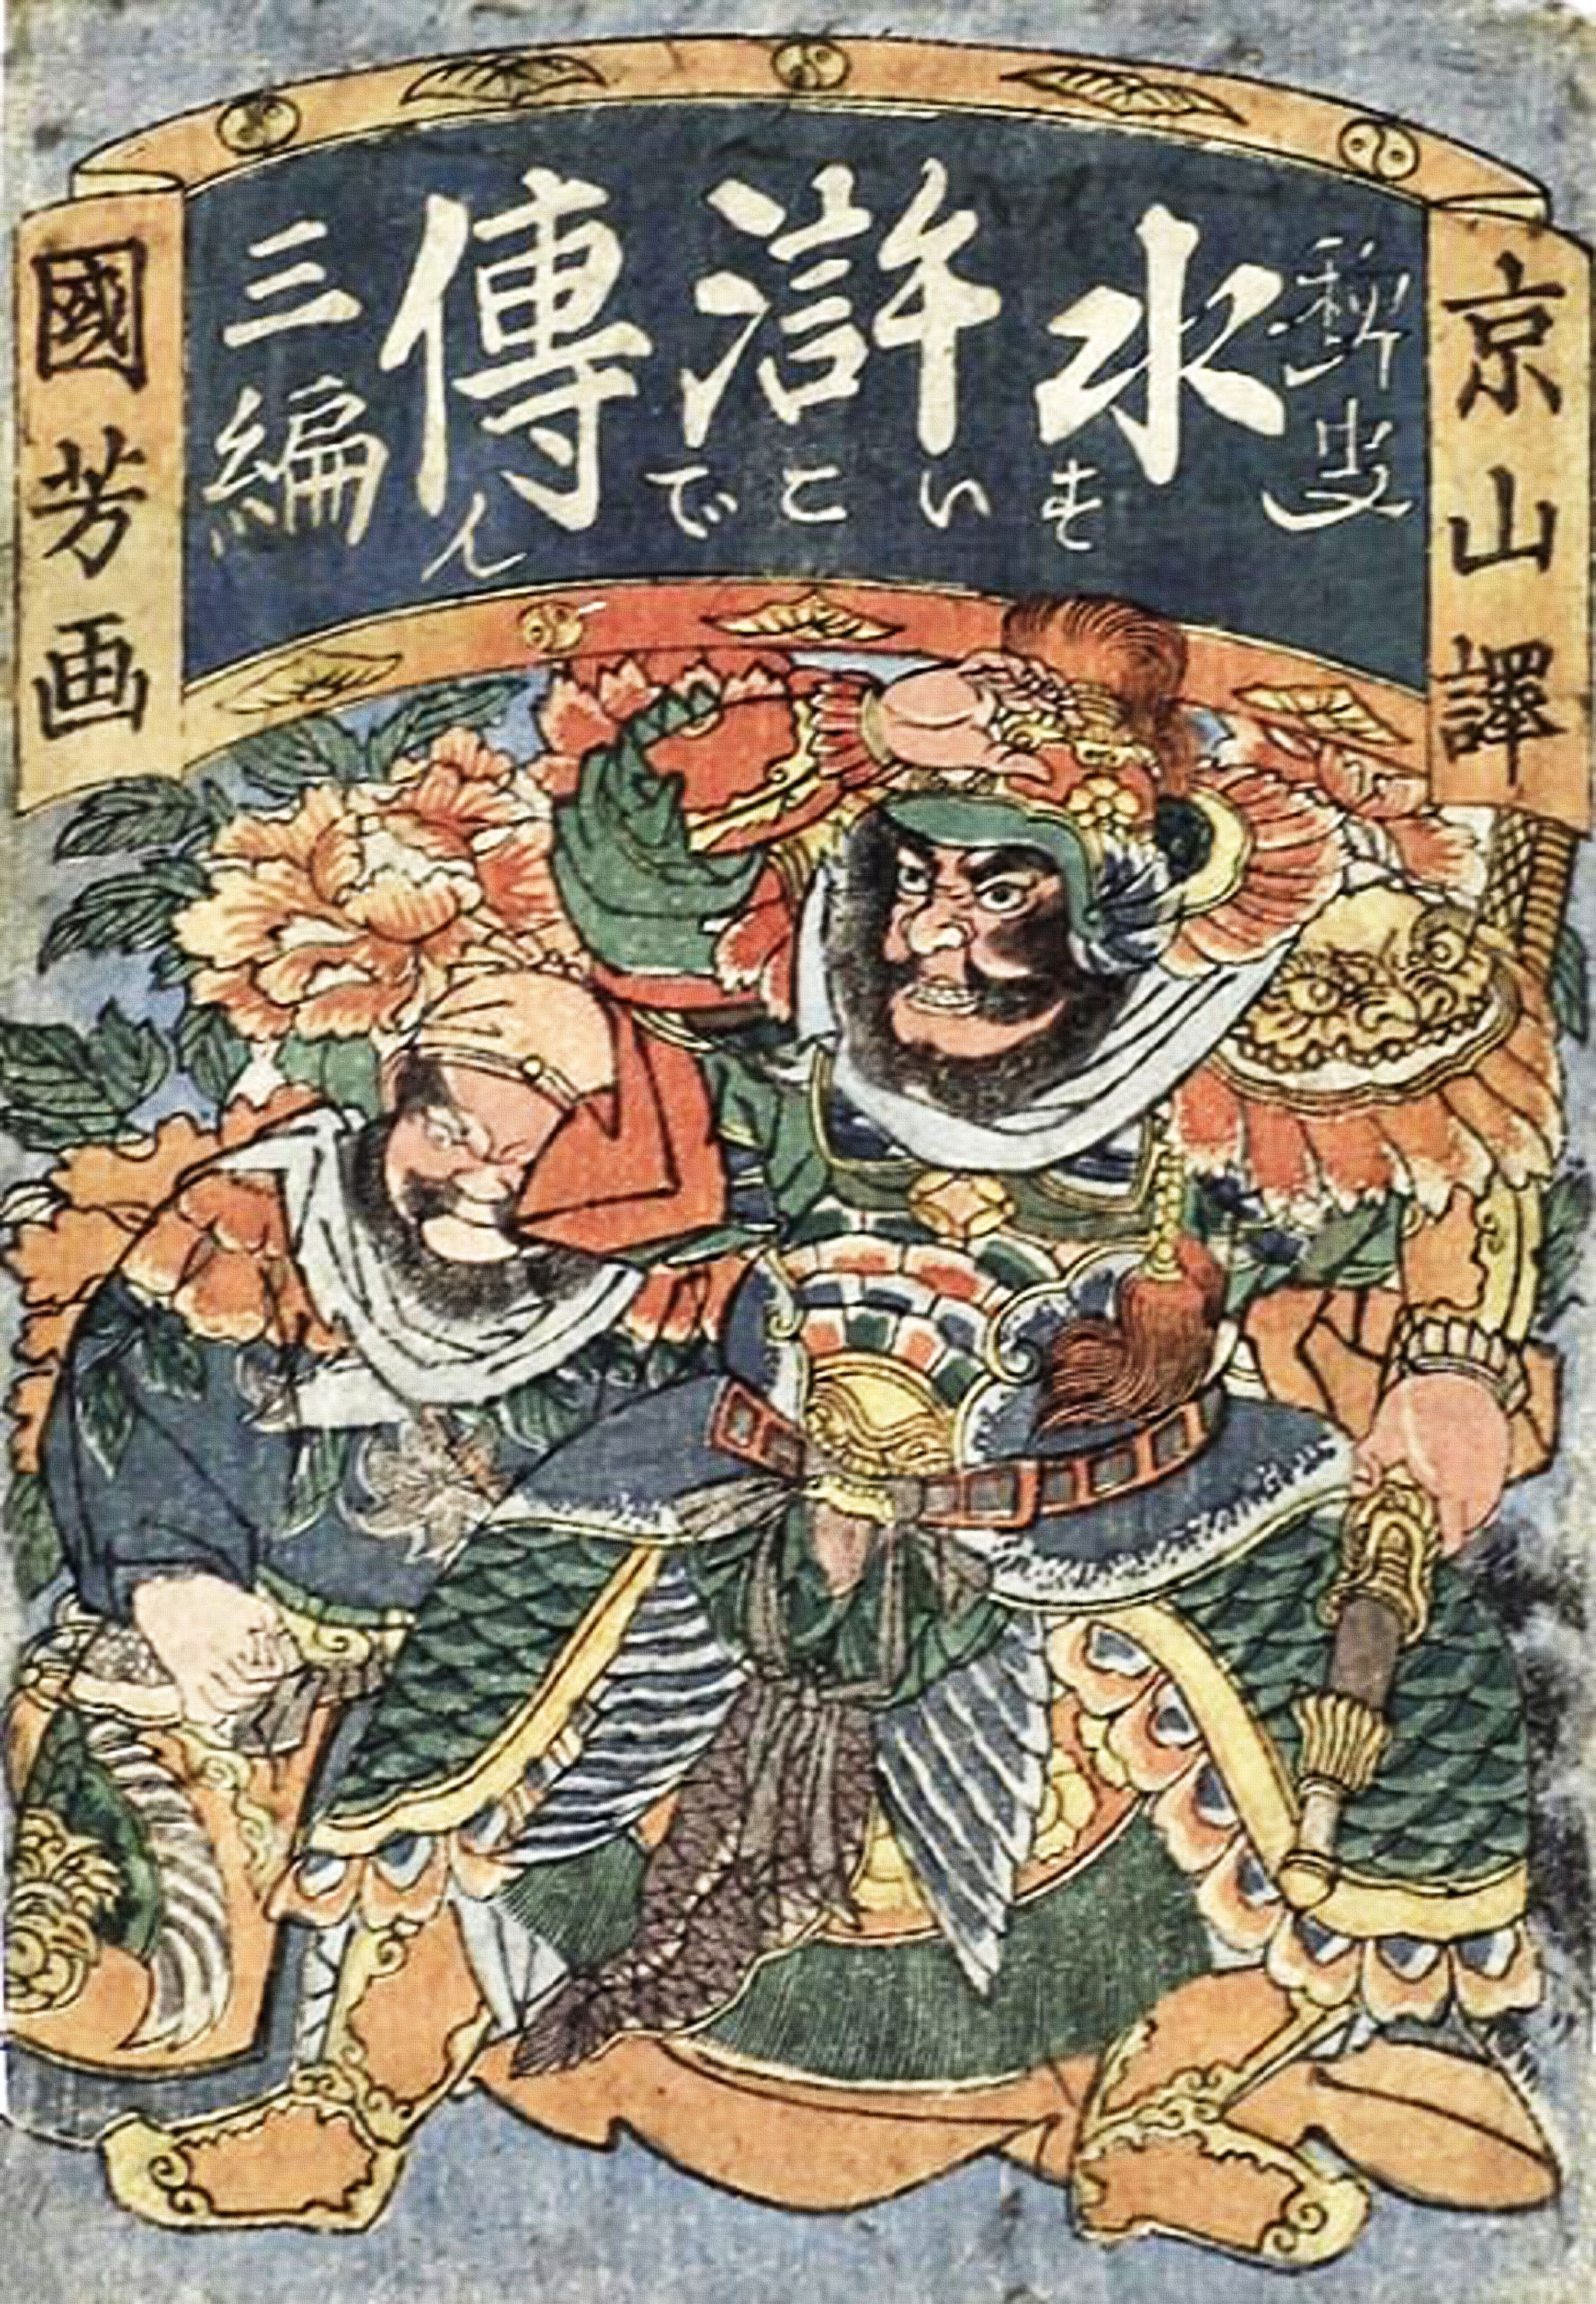 people s history of the suikoden chapter 3 1830 日本 伝統 歌川国芳 武者